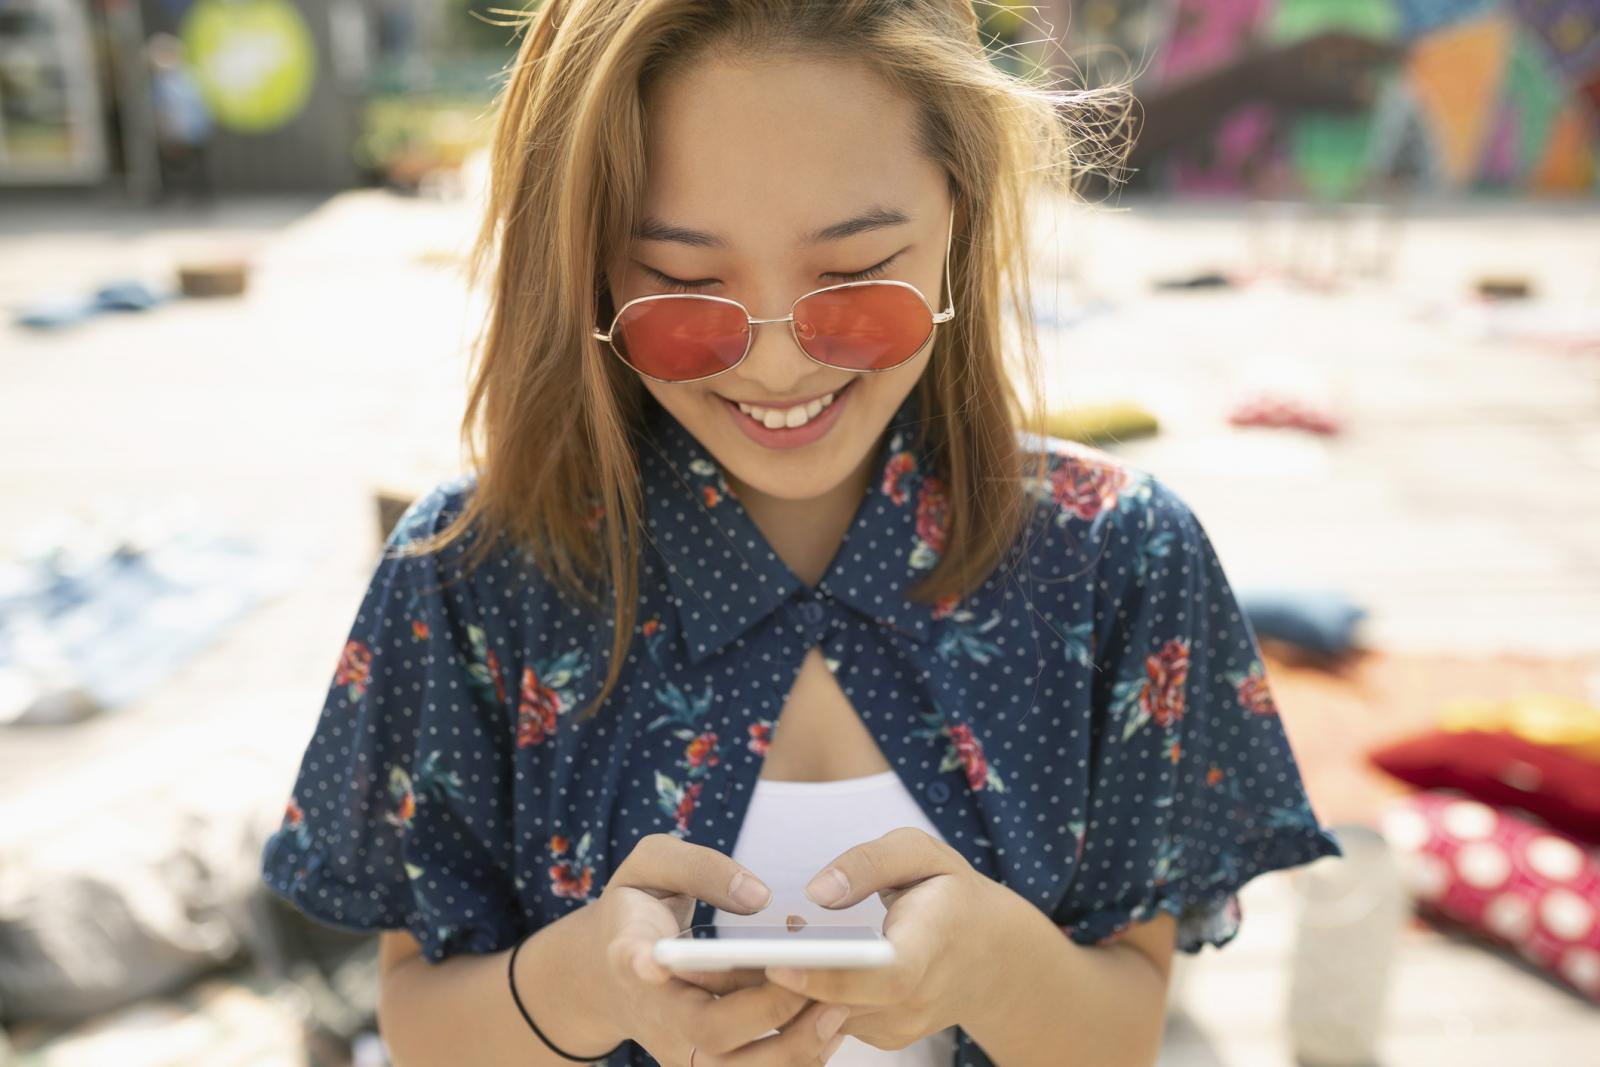 Teenage girl with sunglasses using smart phone